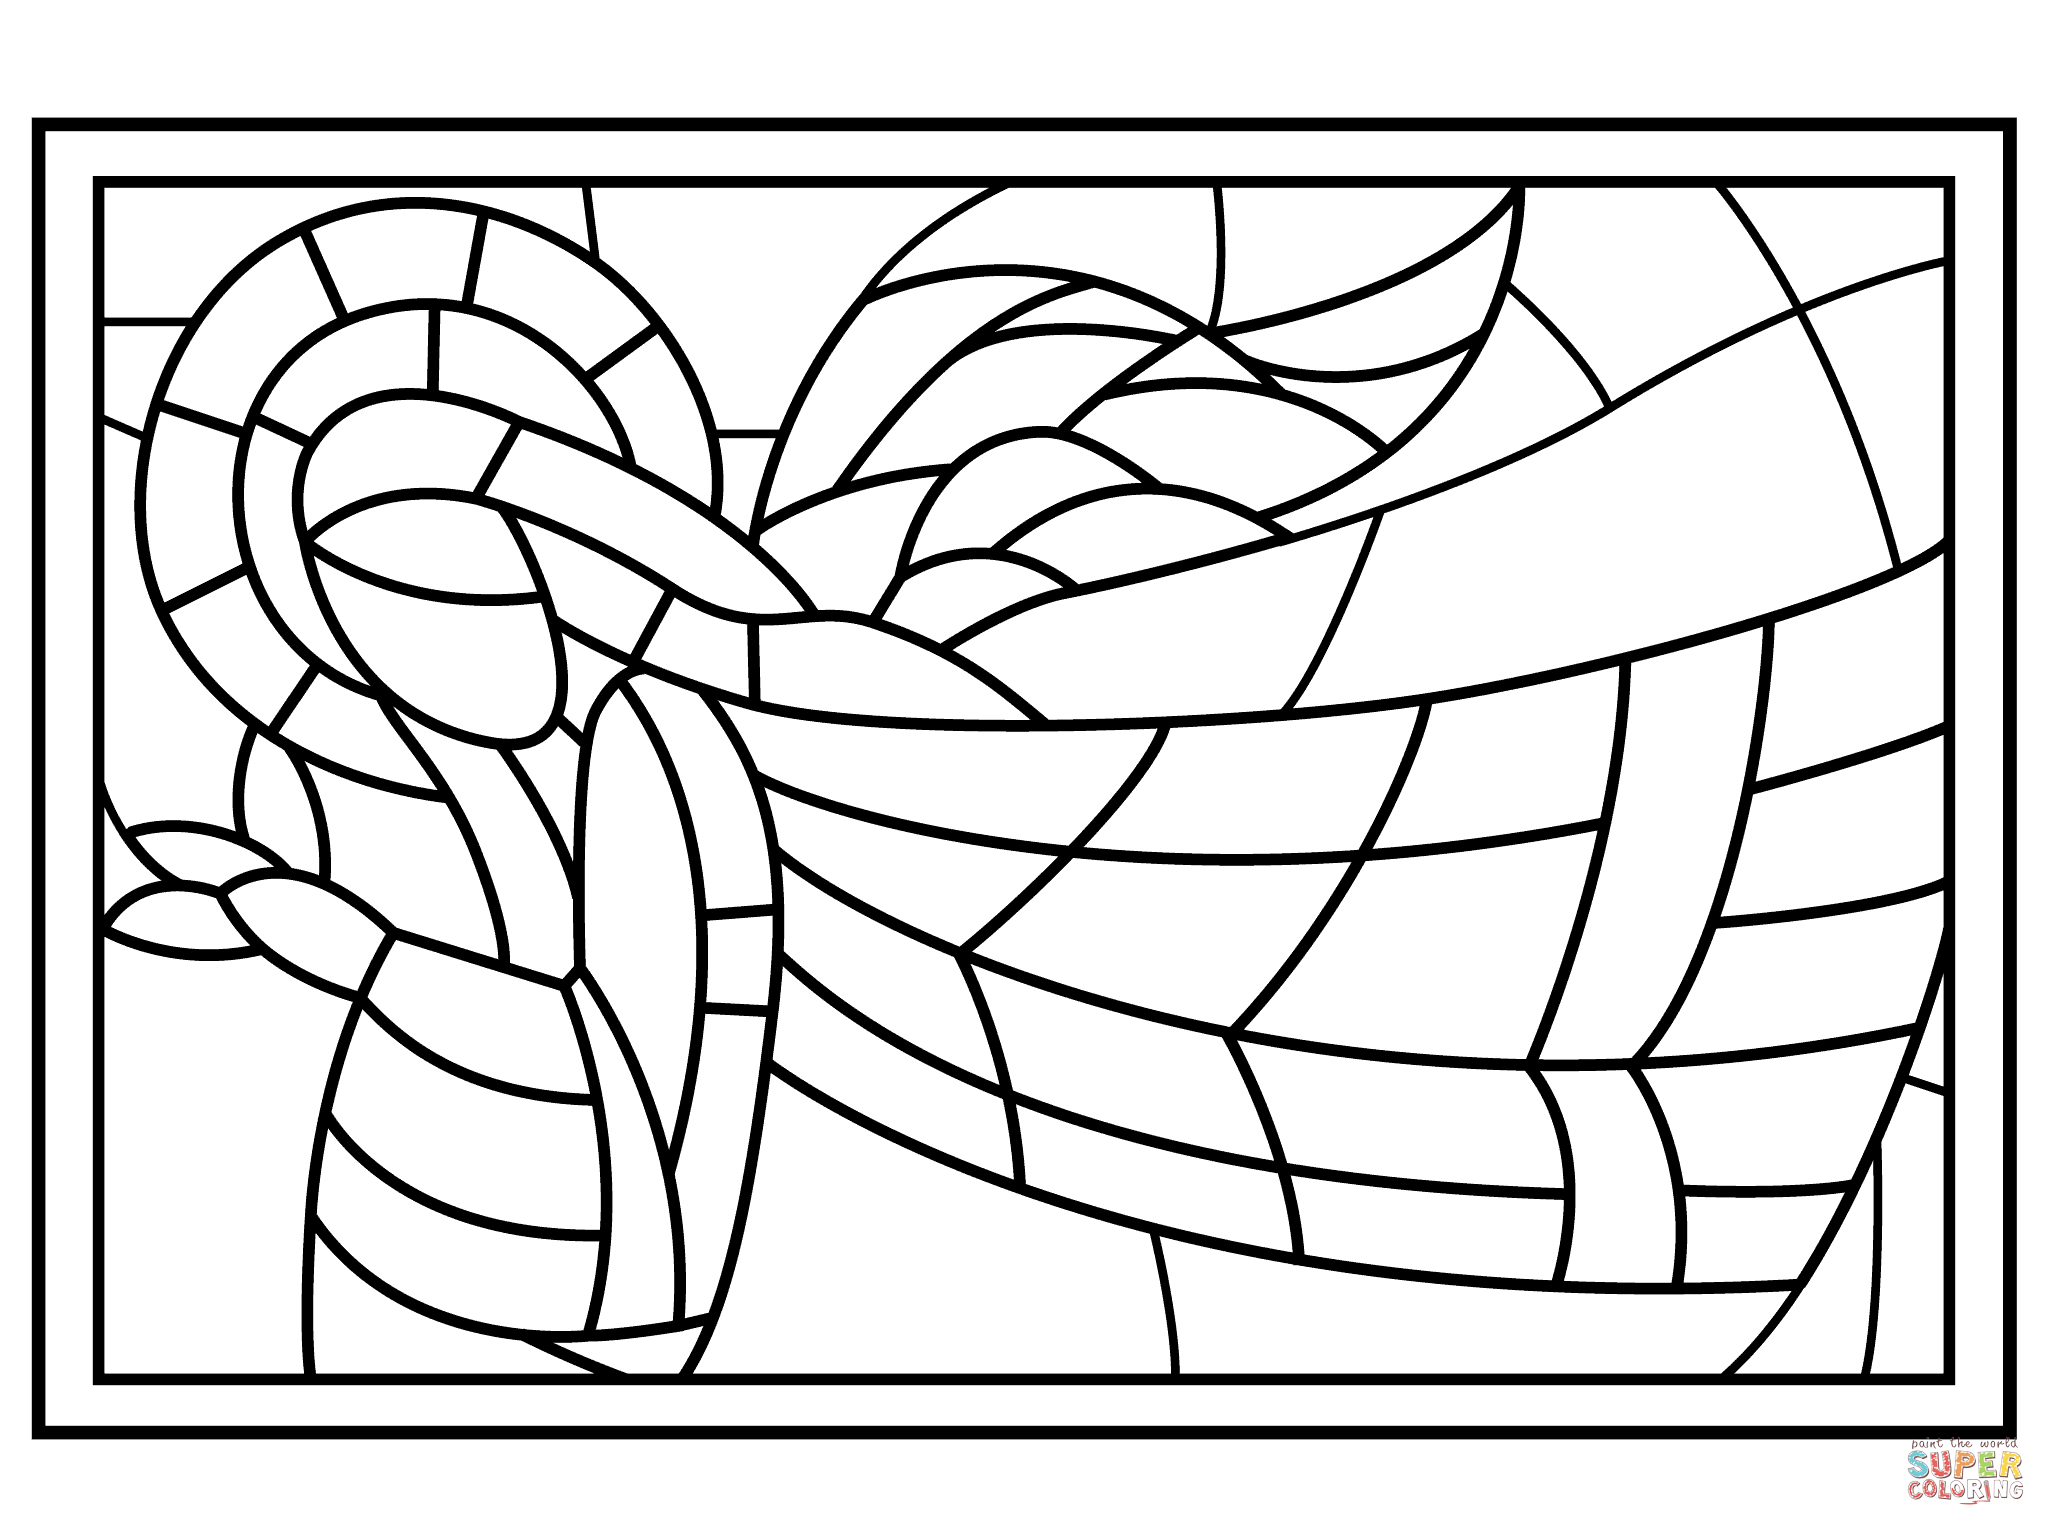 The Ascension Stained Glass Coloring Page | Free Printable - Free Printable Religious Stained Glass Patterns